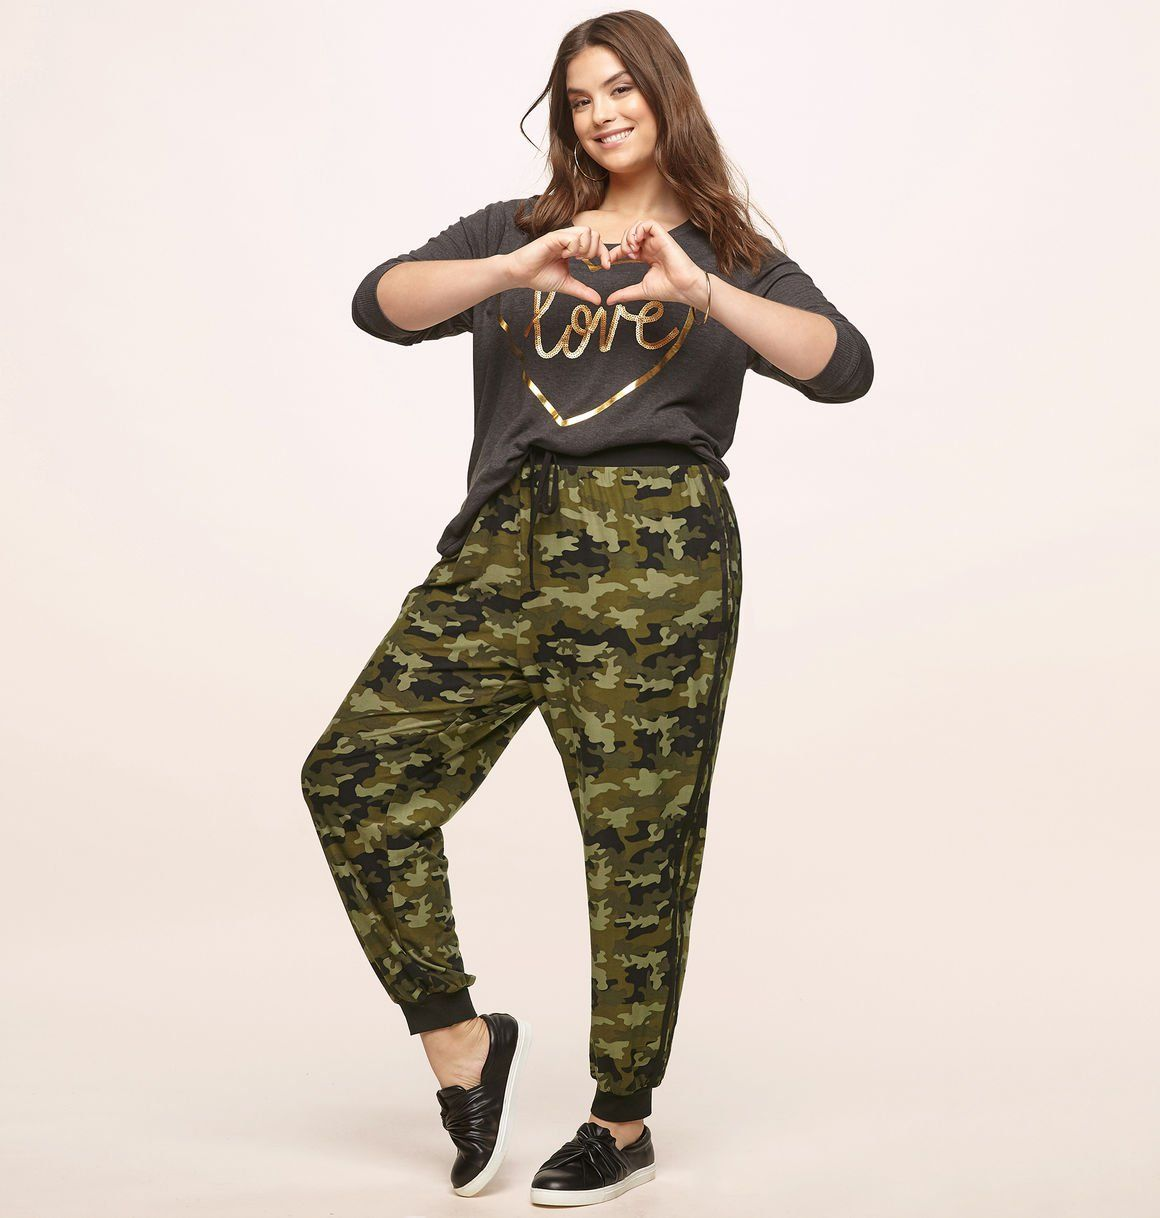 090c3189c2 Shop for new army looks like our plus size Camo Jogger available in sizes 14-24  online at loralette.com. Avenue Store